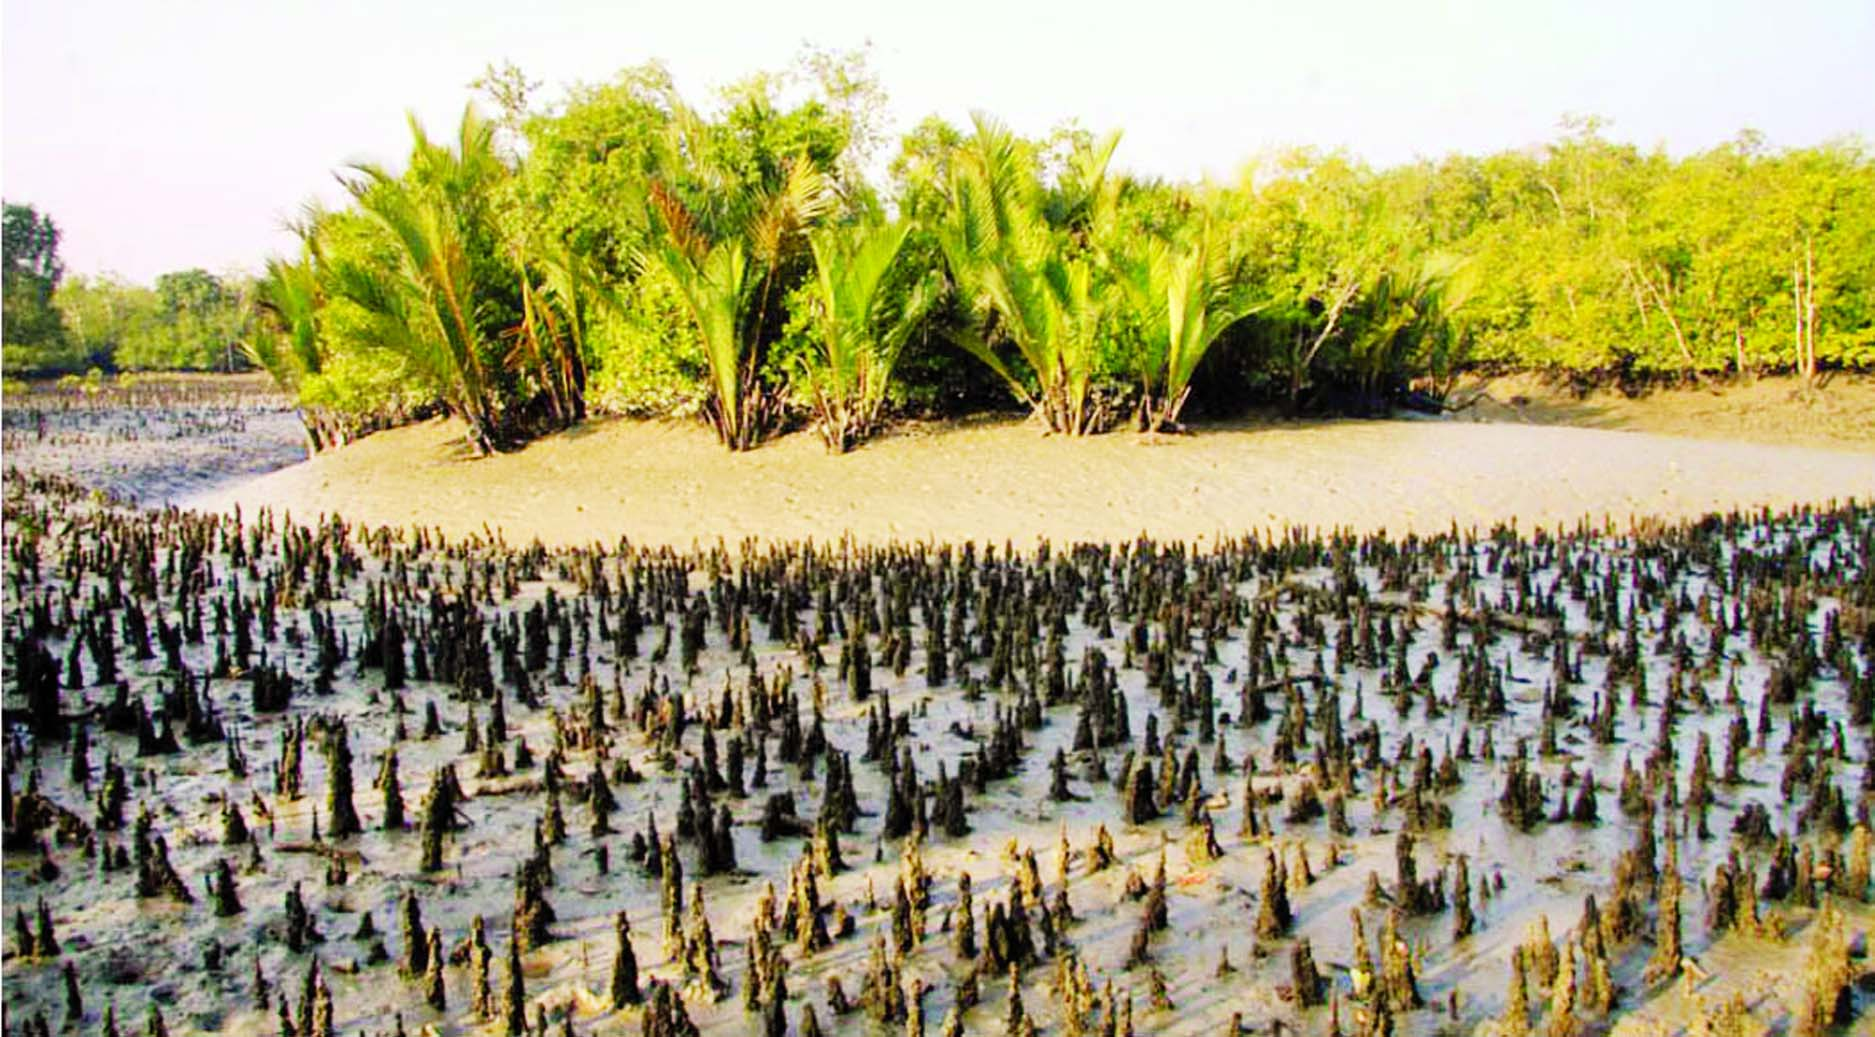 Floral life of Sundarbans at stake